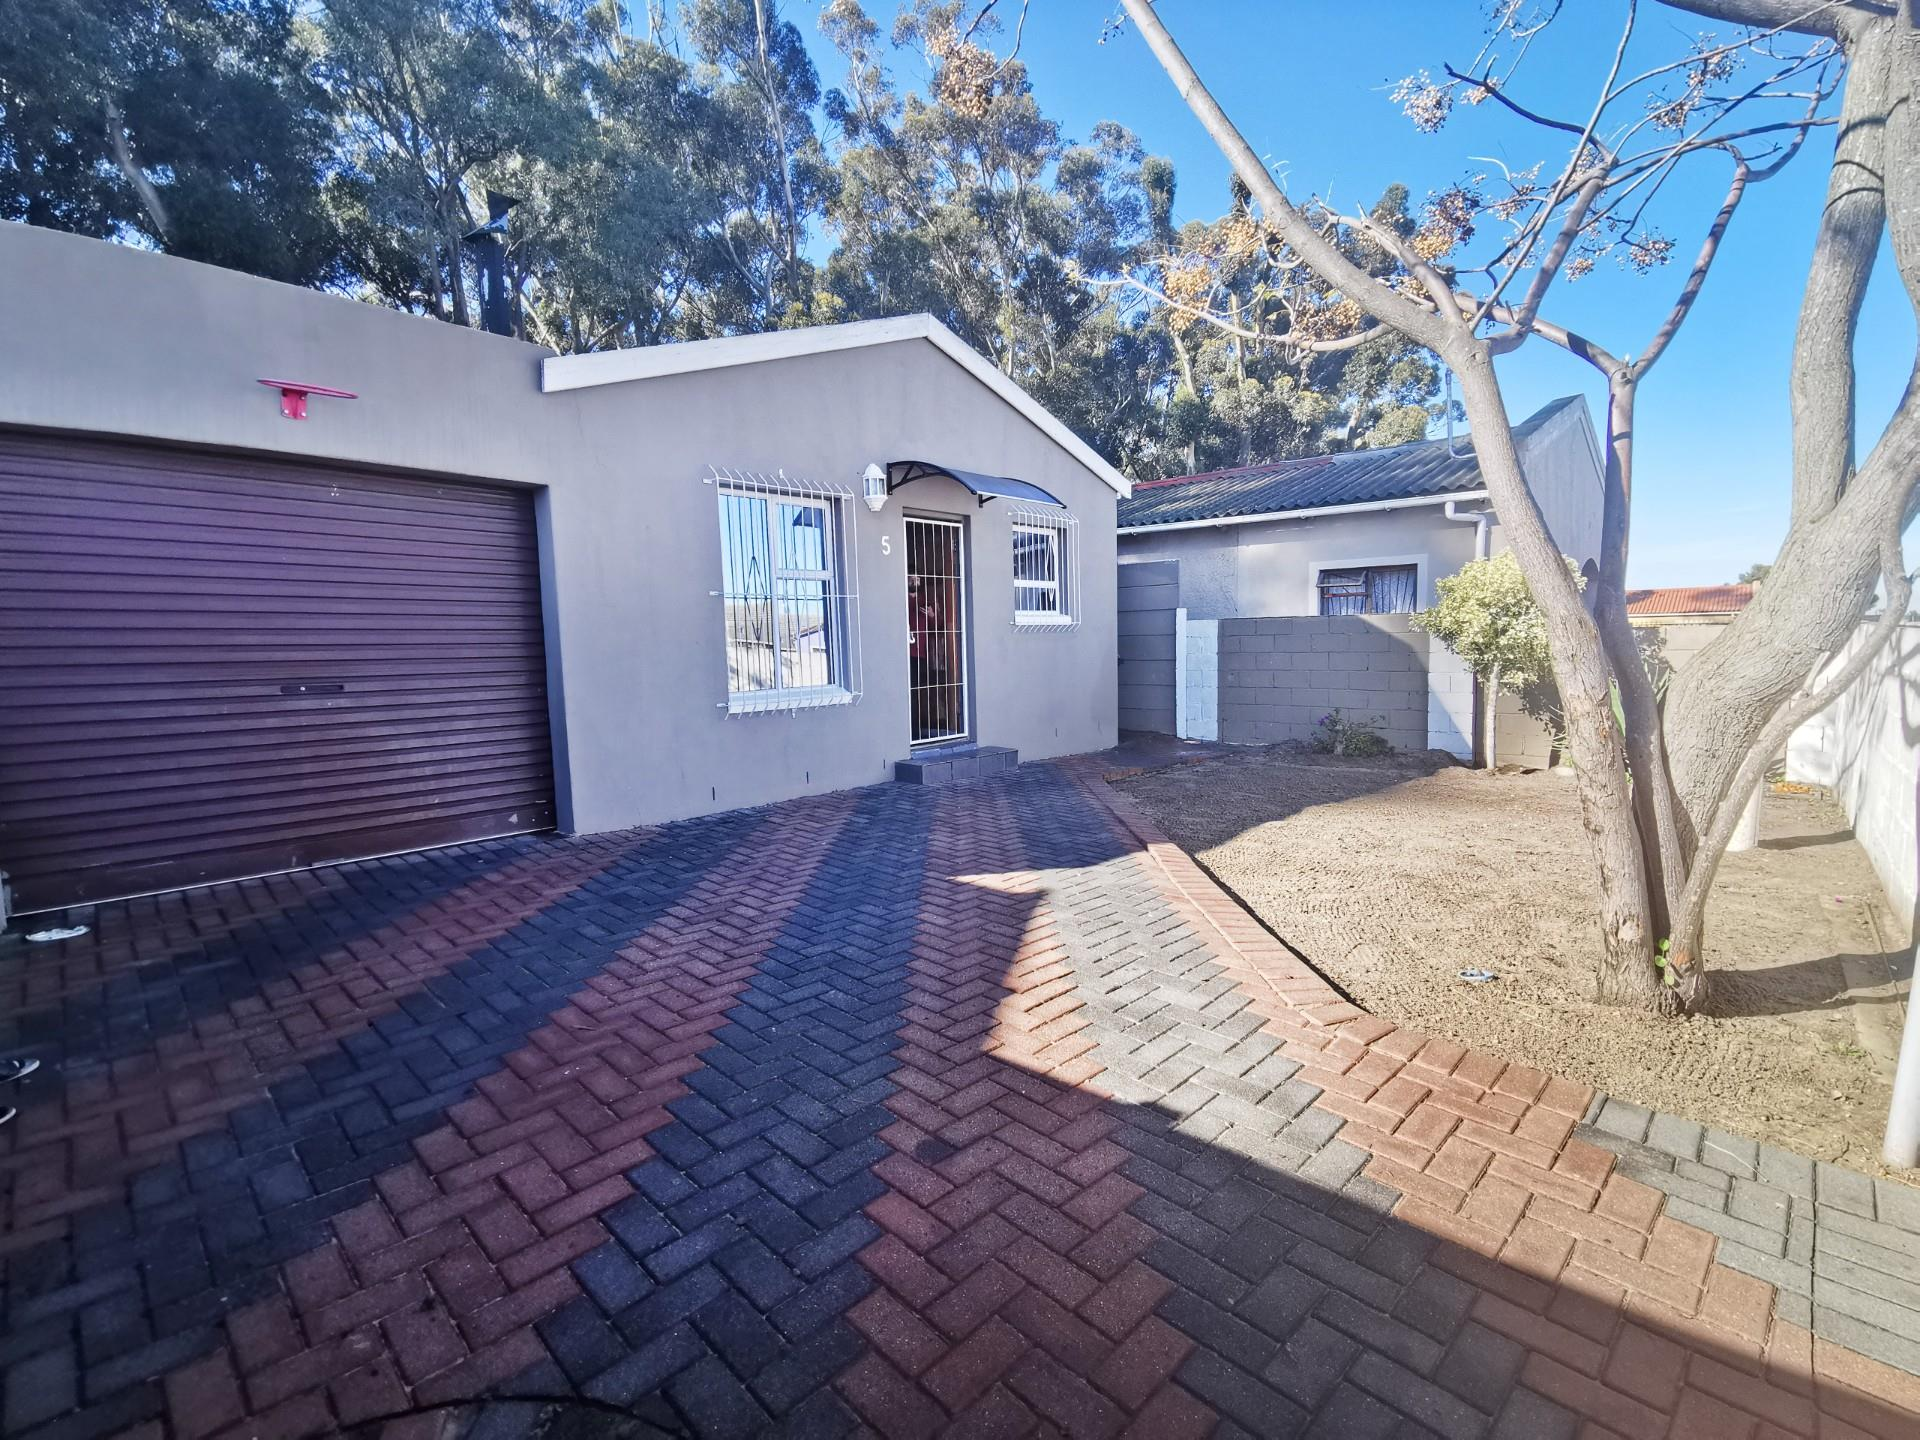 4 Bedroom House For Sale In Beacon Hill Re Max Of Southern Africa